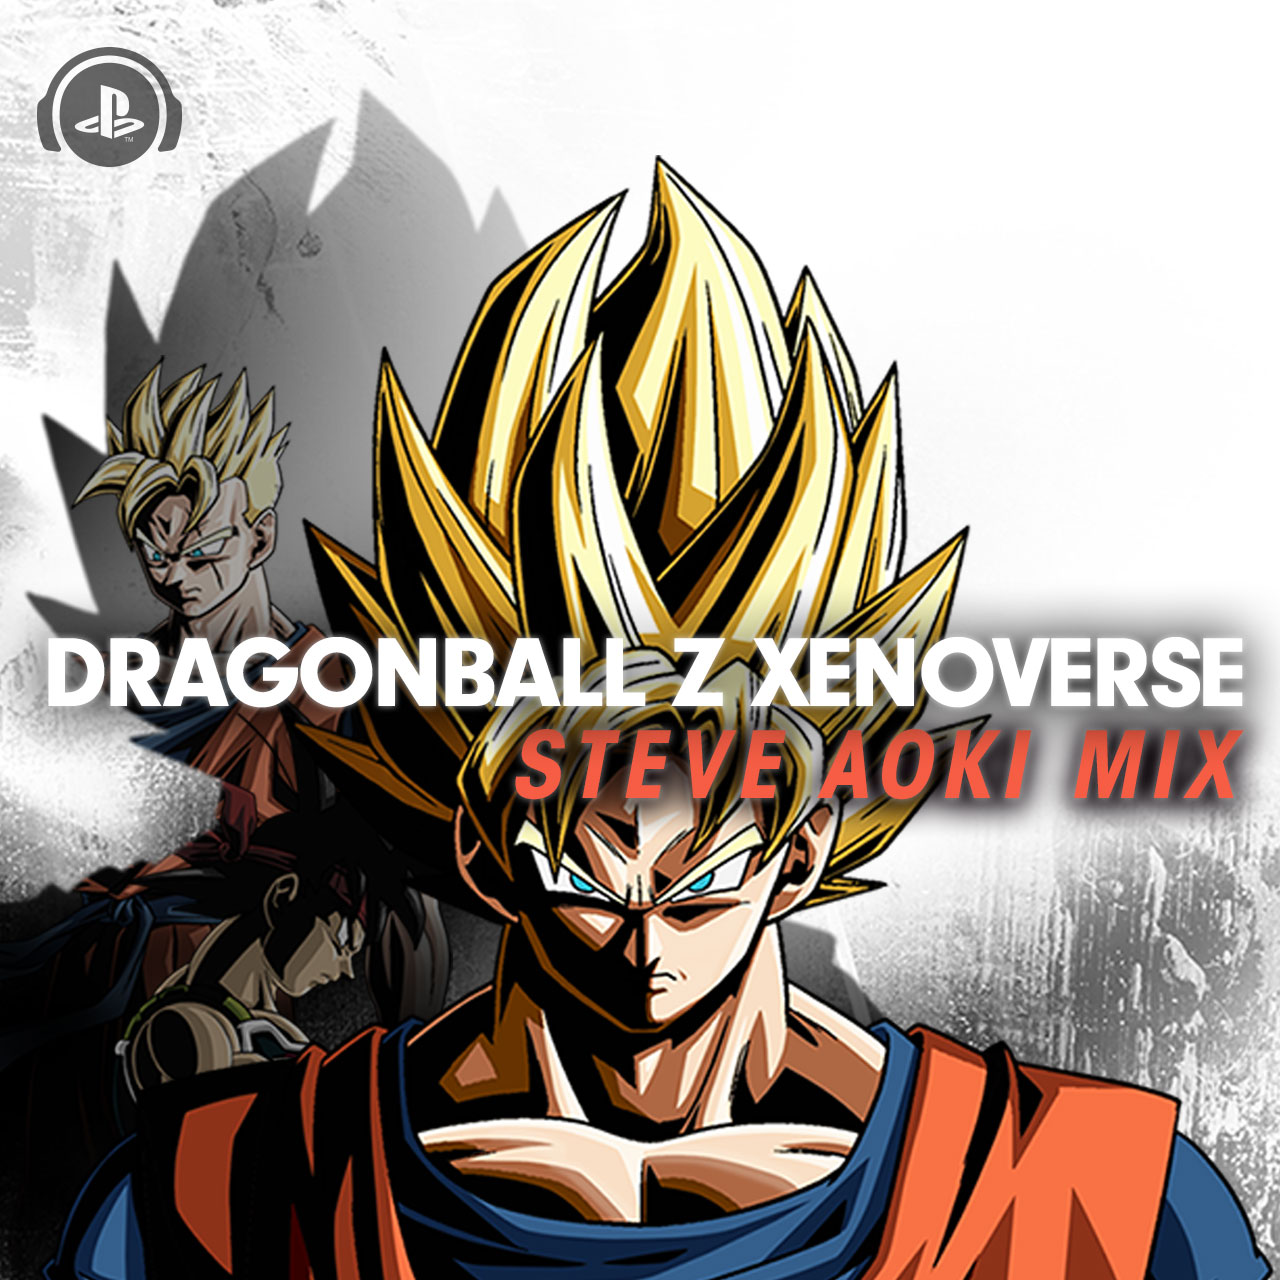 playstation-music-dragon-ball-xenoverse-2-playlist-art-01-us-17nov16